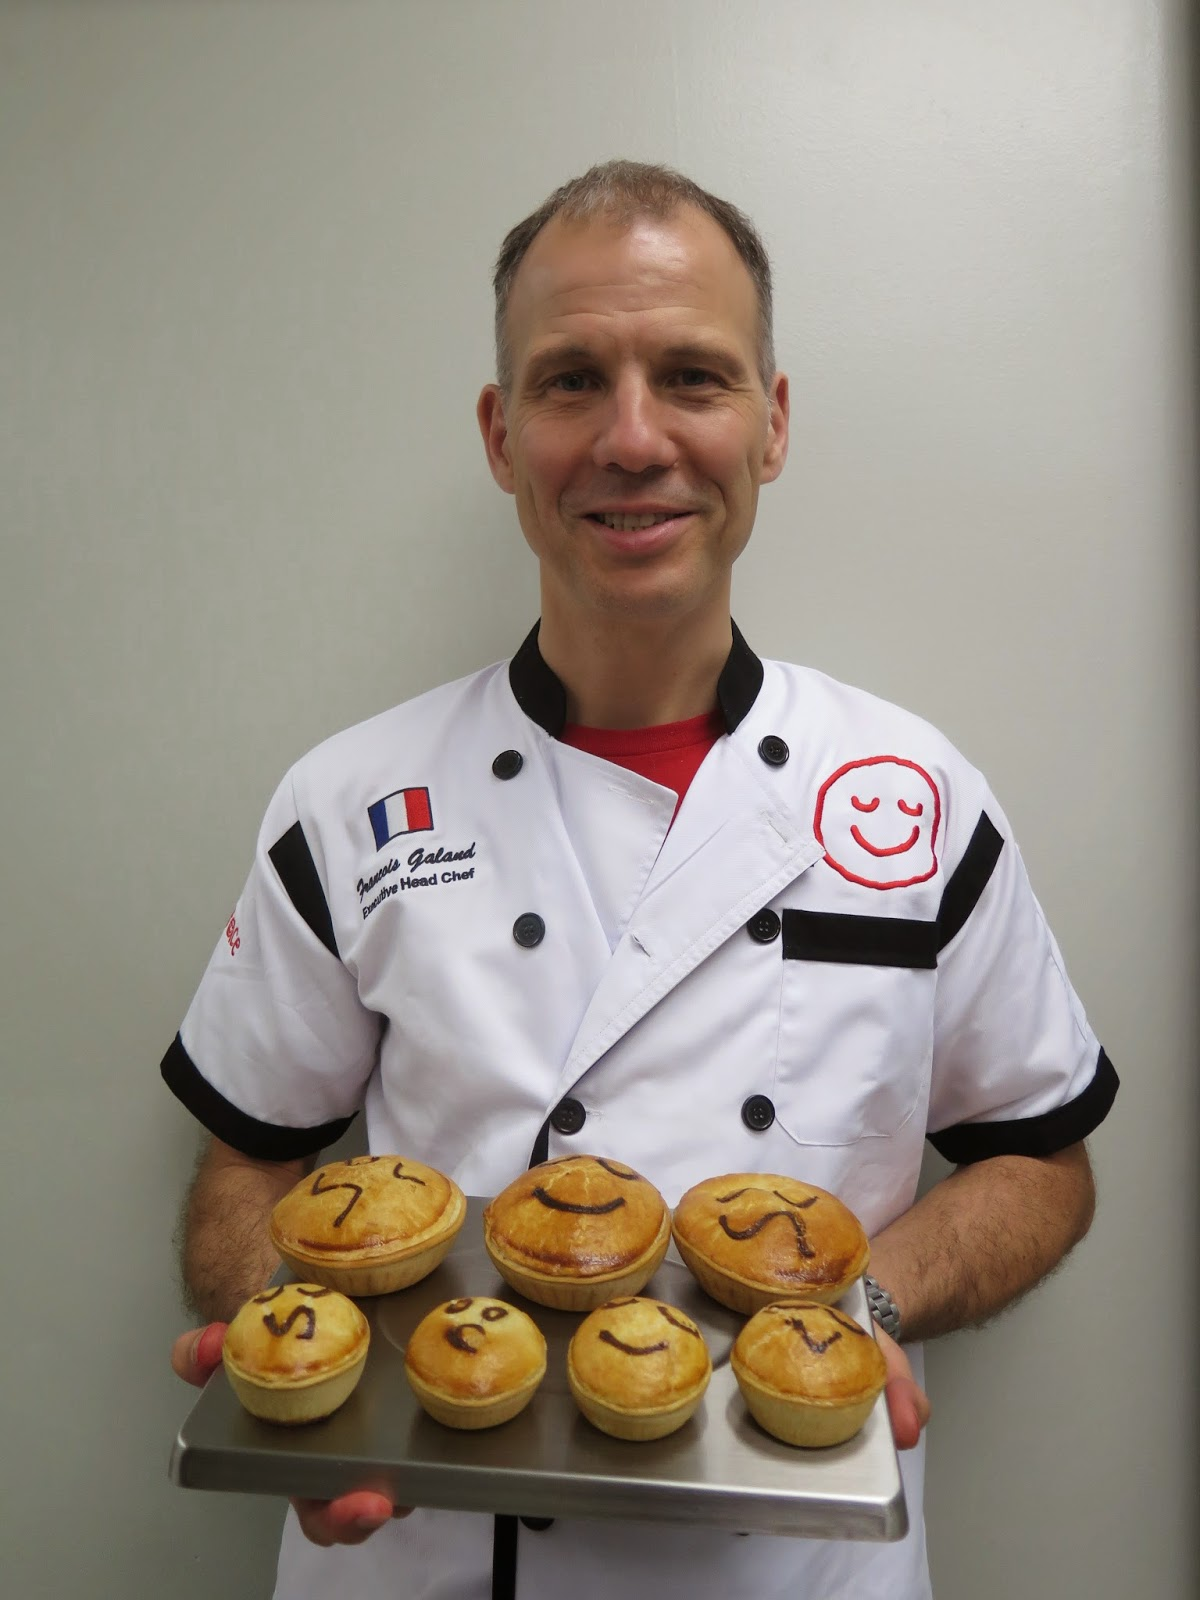 Pie Face Chef Francois Galland